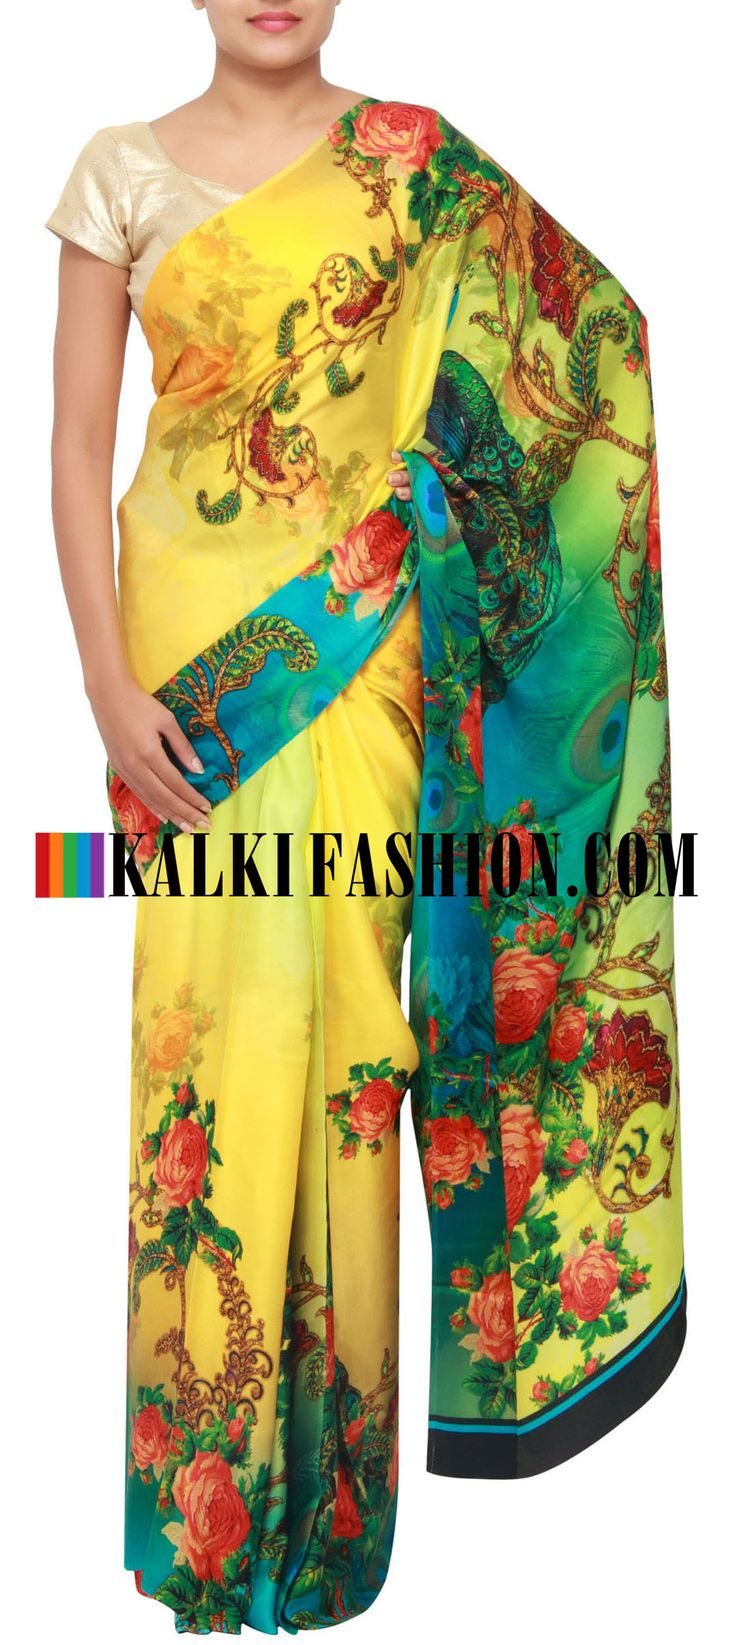 Get this beautiful saree here: http://www.kalkifashion.com/yellow-printed-saree-in-floral-motif-only-on-kalki.html Free shipping worldwide.